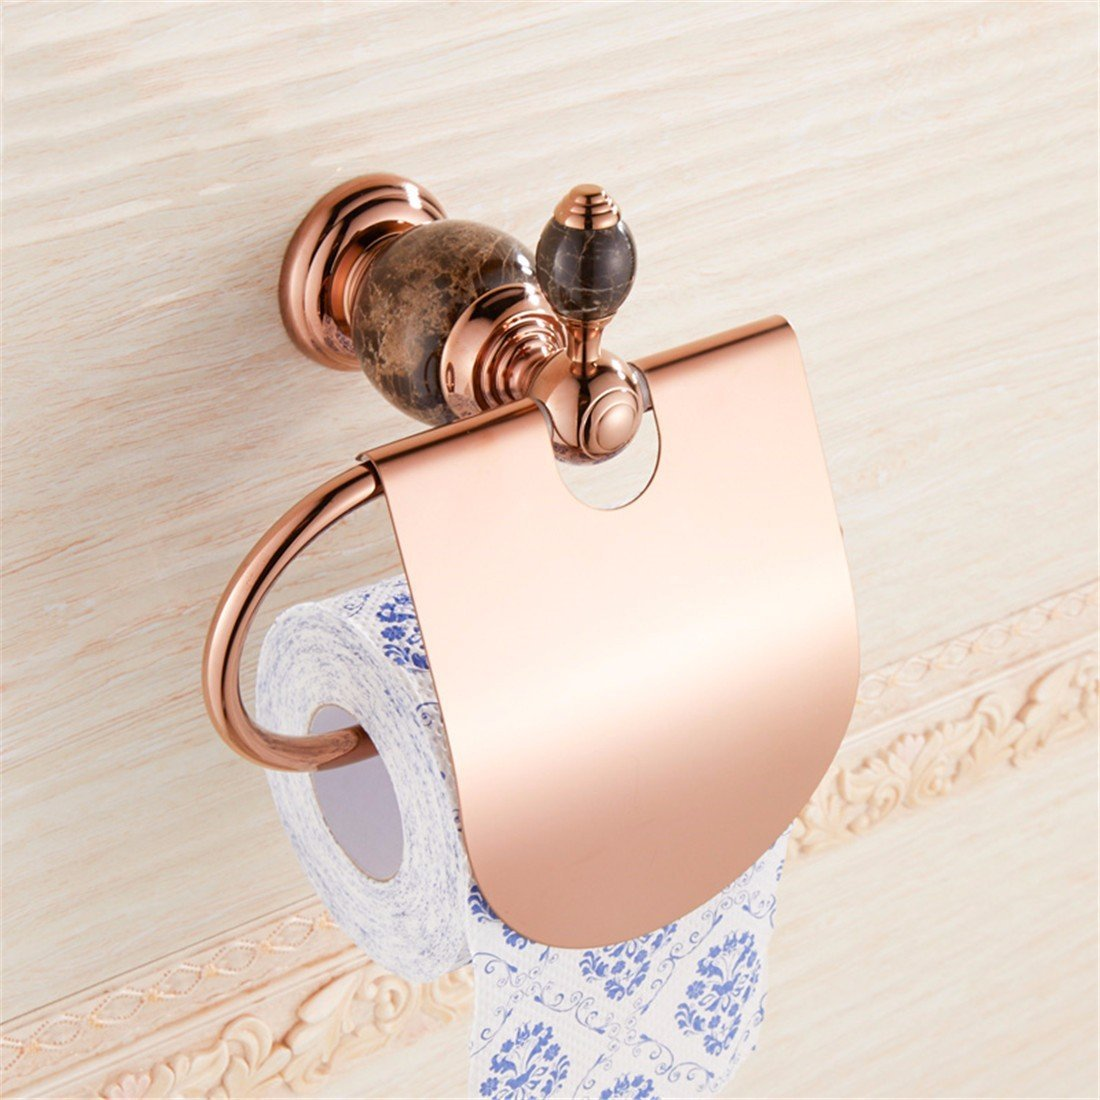 LAONA Continental antique rose gold black jade bathroom accessory kit towel bars toilet paper, toilet paper holder